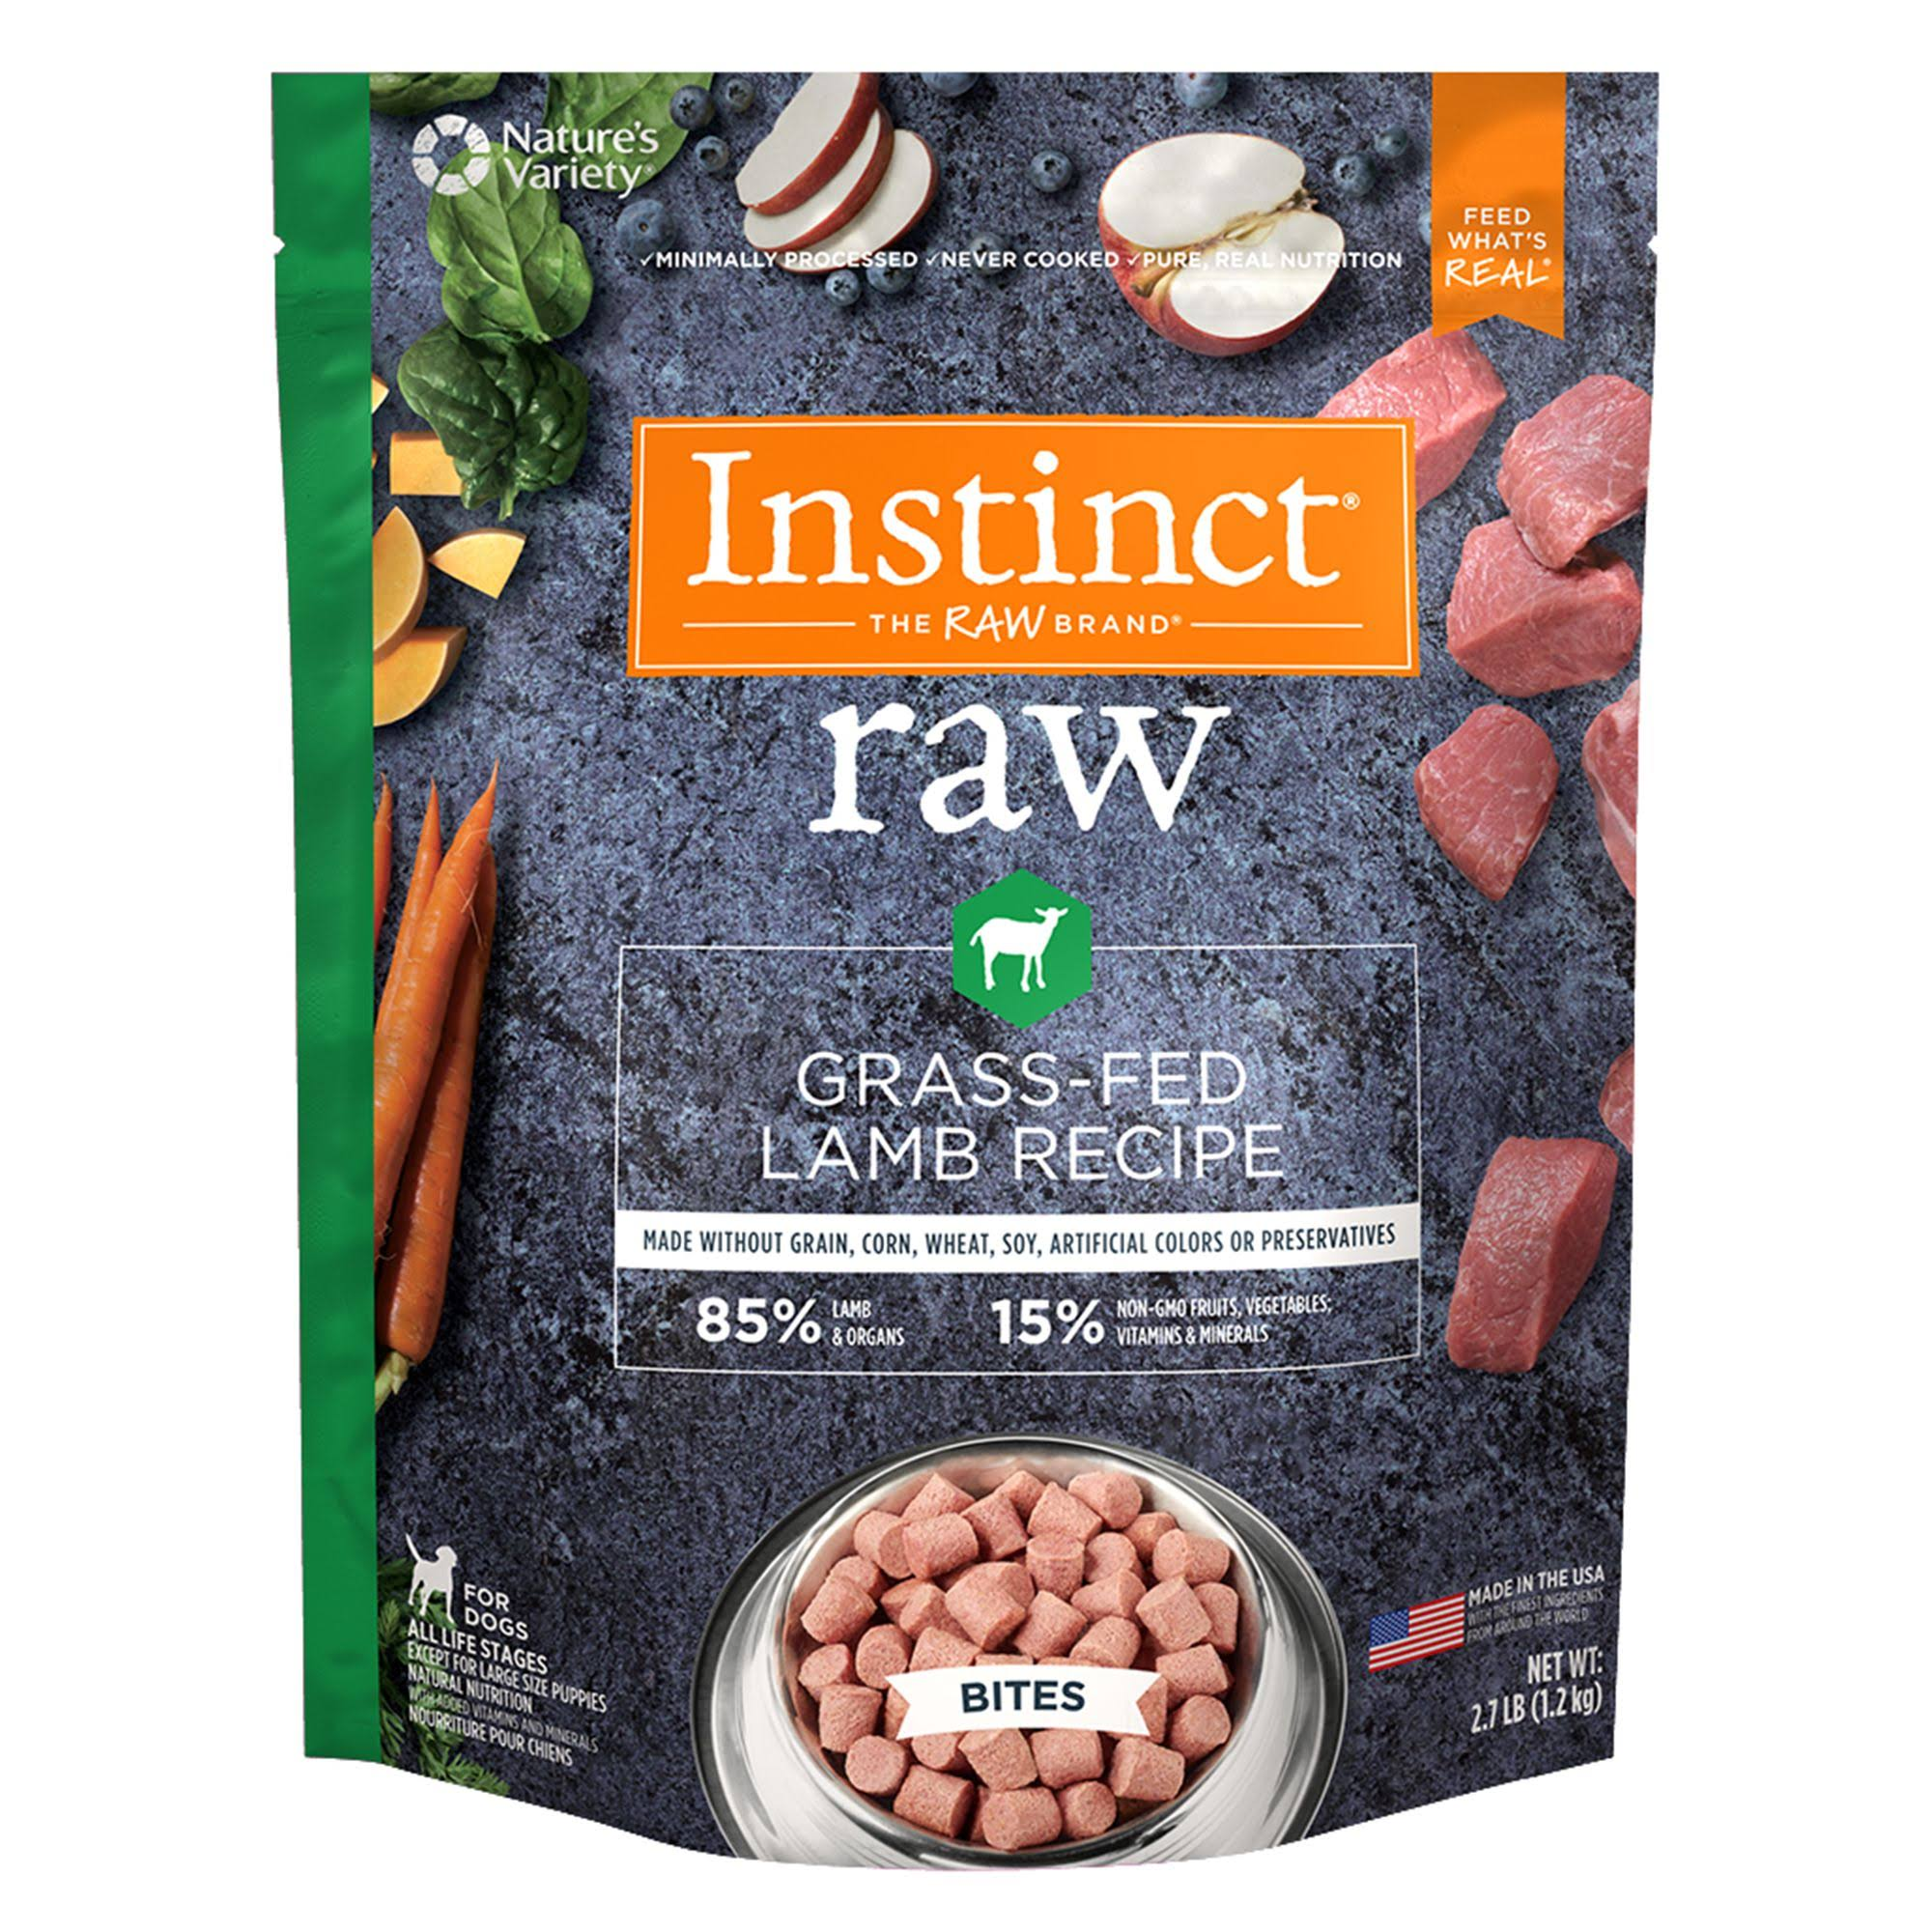 Instinct by Nature's Variety Frozen Raw Bites Grain-Free Grass-Fed Lamb Recipe Dog Food, 2.7-lb Bag